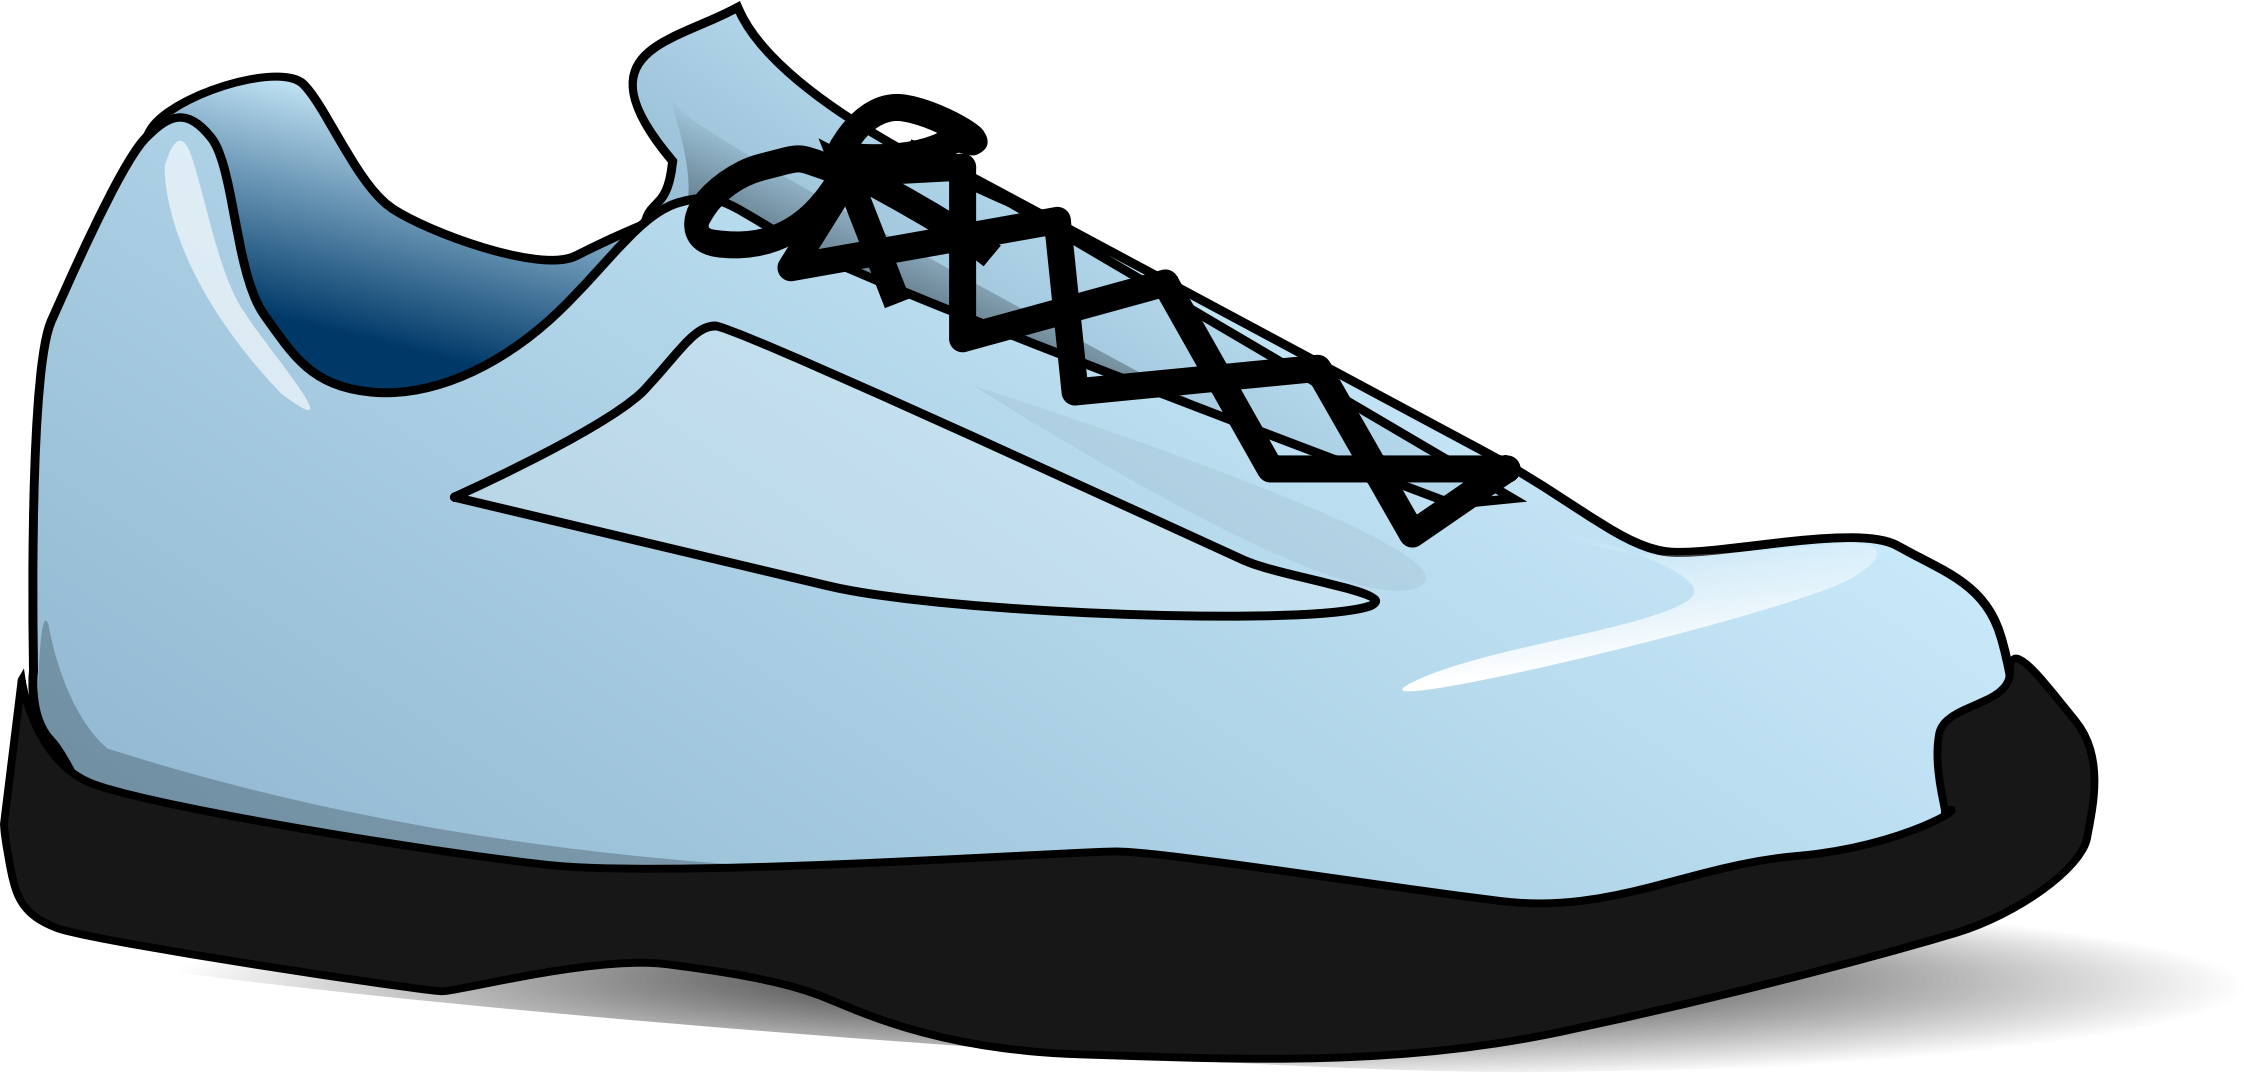 Basketball and shoes clipart svg free Nike Shoes Clipart at GetDrawings.com | Free for personal use Nike ... svg free